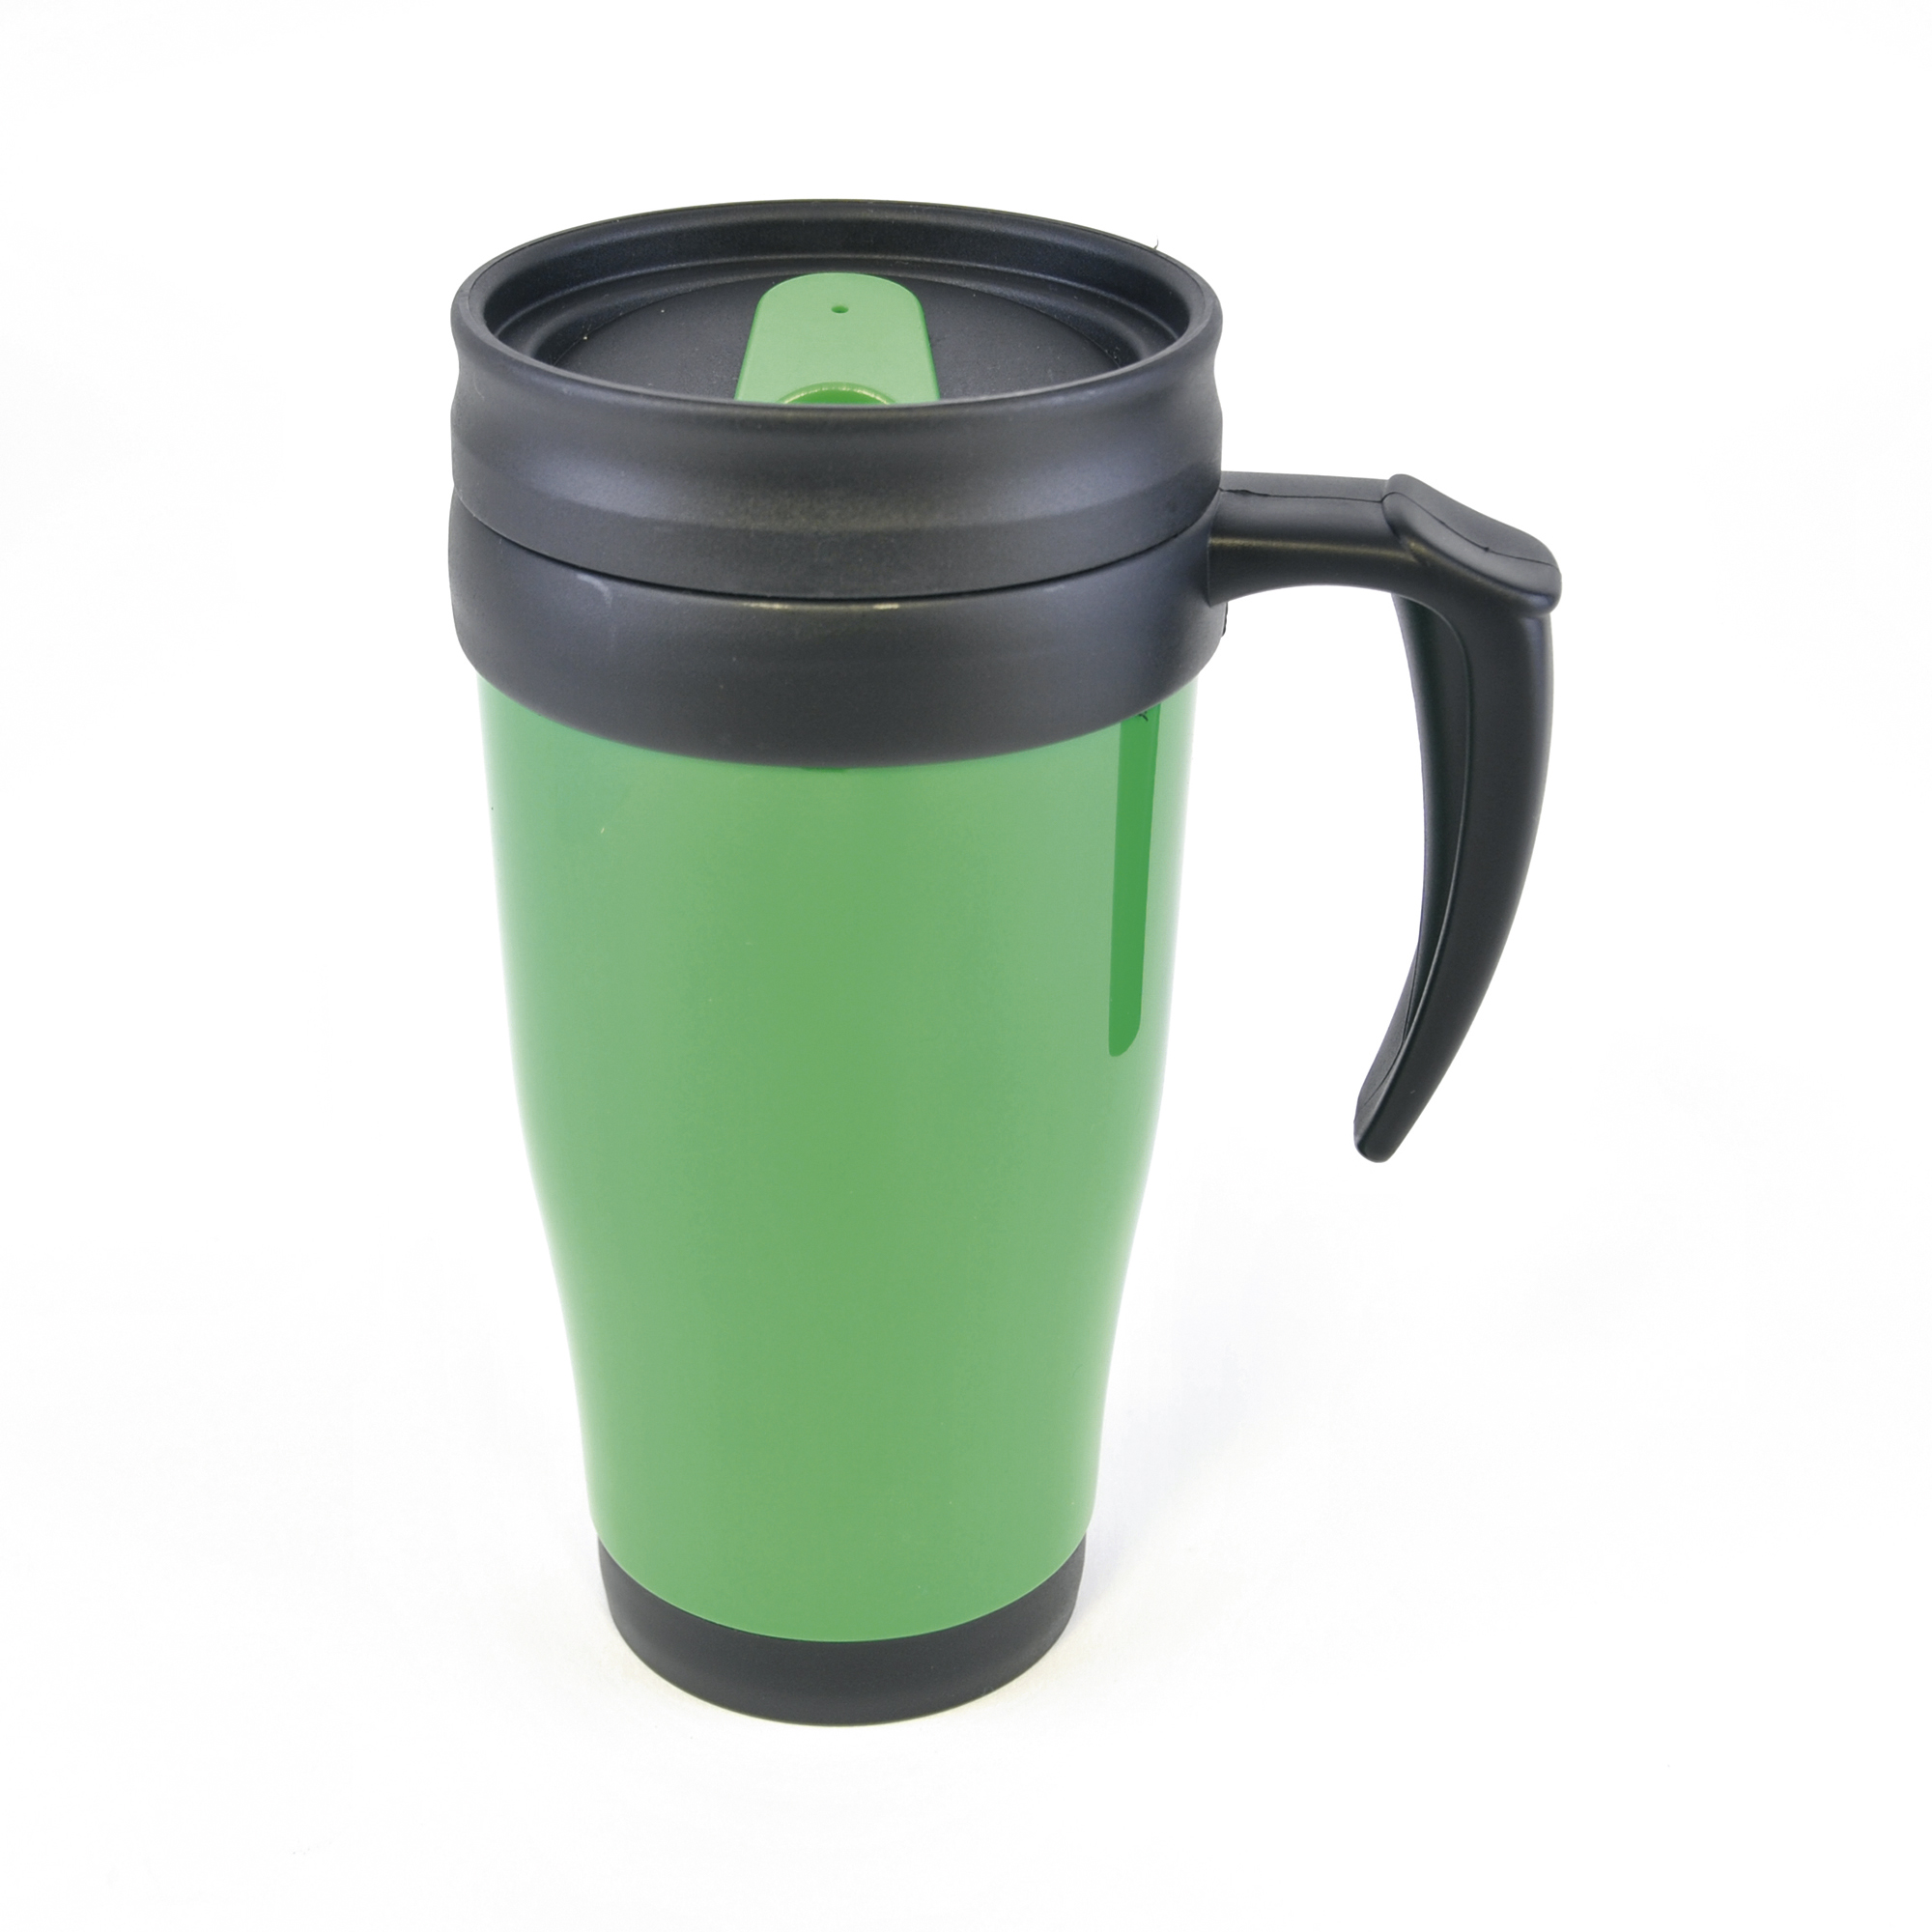 Double Handled Coffee Mugs Thermal Travel Mug Tee Coffee Hot Drink Cup Handle Double